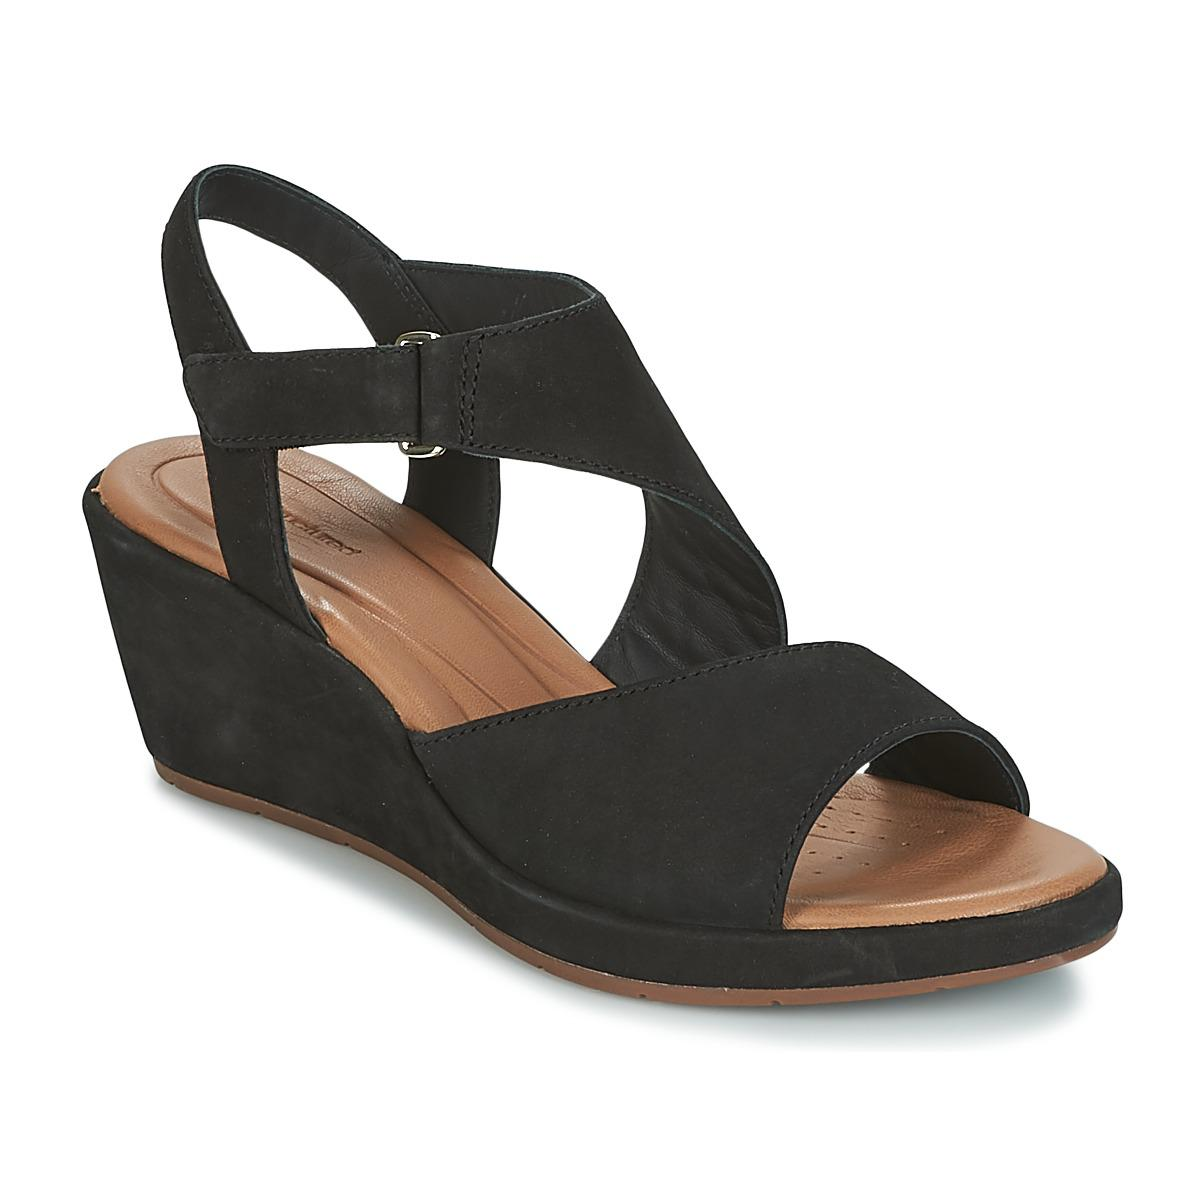 1650a4b1c Clarks Un Plaza Sling Sandals in Black - Lyst